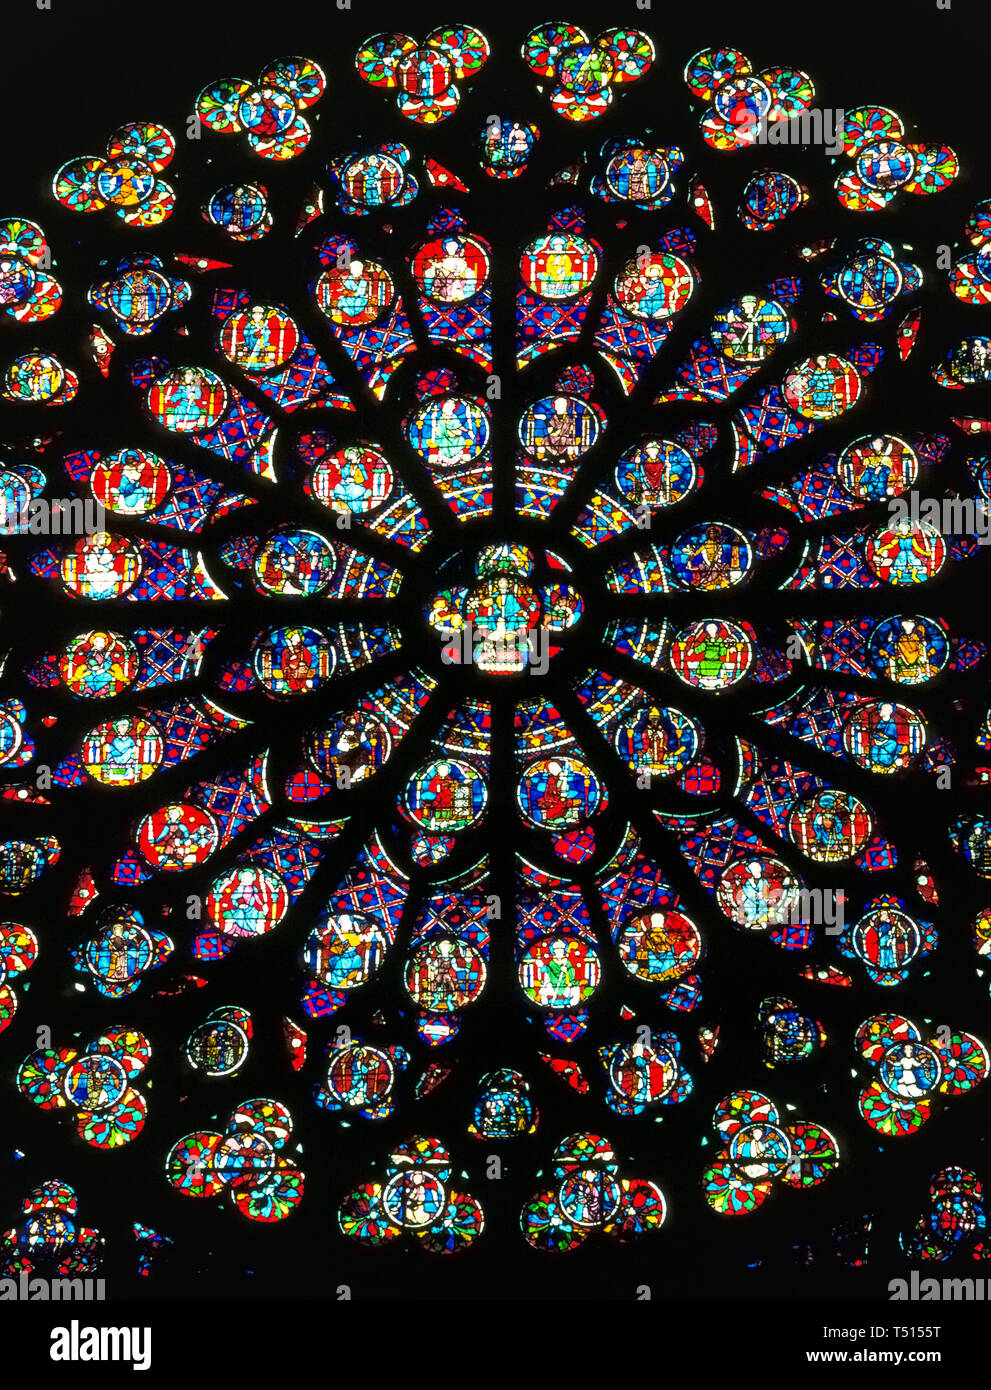 A close-up interior view of one of the three beautiful rose windows in the gothic Notre-Dame de Paris, the famous Catholic cathedral in the French capital that is one of Europe's most popular tourist attractions. This photograph of the large circular stained-glass window was taken before the historic church suffered major damage by a disastrous fire in April, 2019. Rose windows, originally known as wheel windows, depict Biblical scenes or characters in smaller round windows that radiate from the center like wheel spokes or flower petals. Notre Dame's rose windows date to the mid-13th Century. - Stock Image